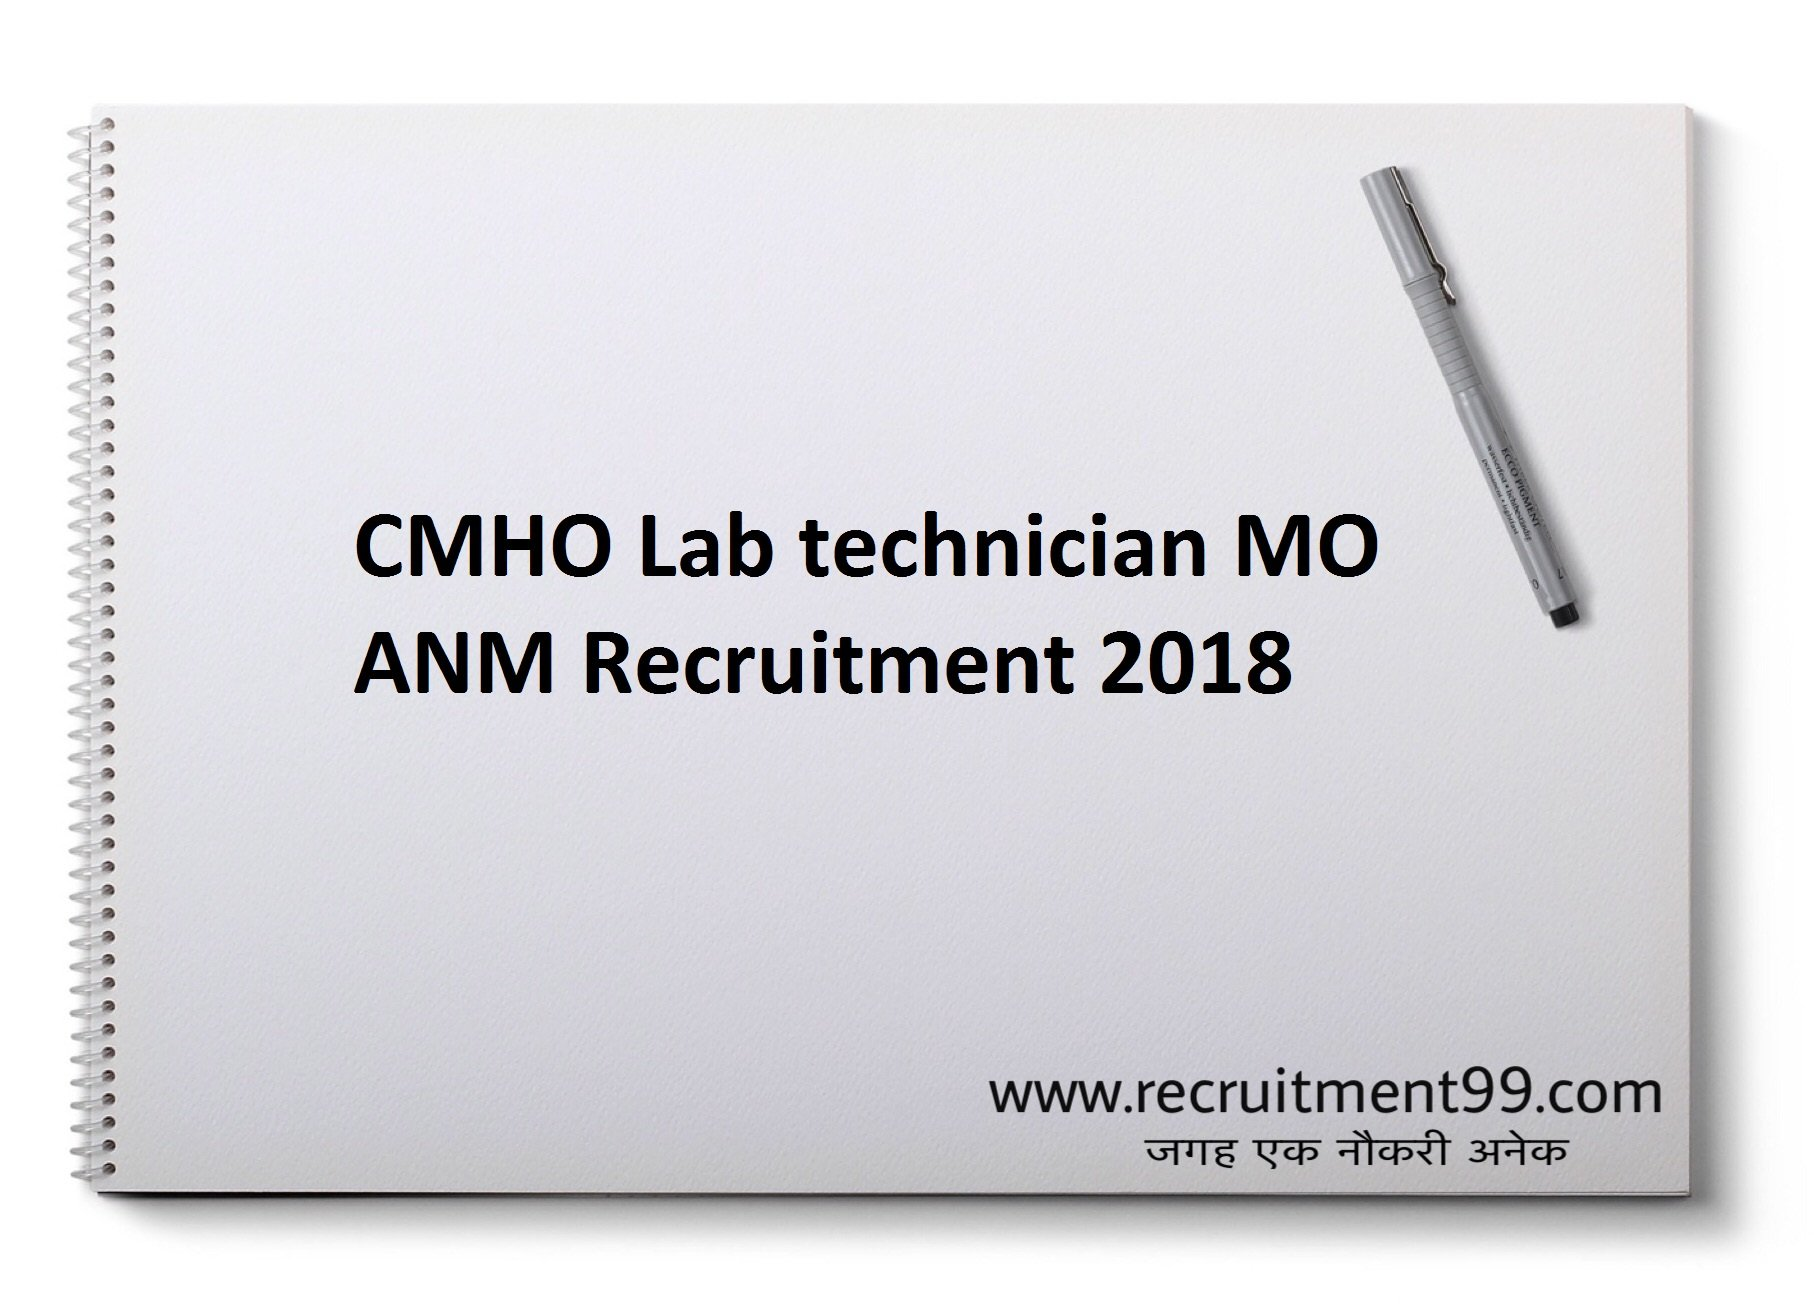 CMHO Lab technician MO ANM Recruitment Admit Card Result 2018